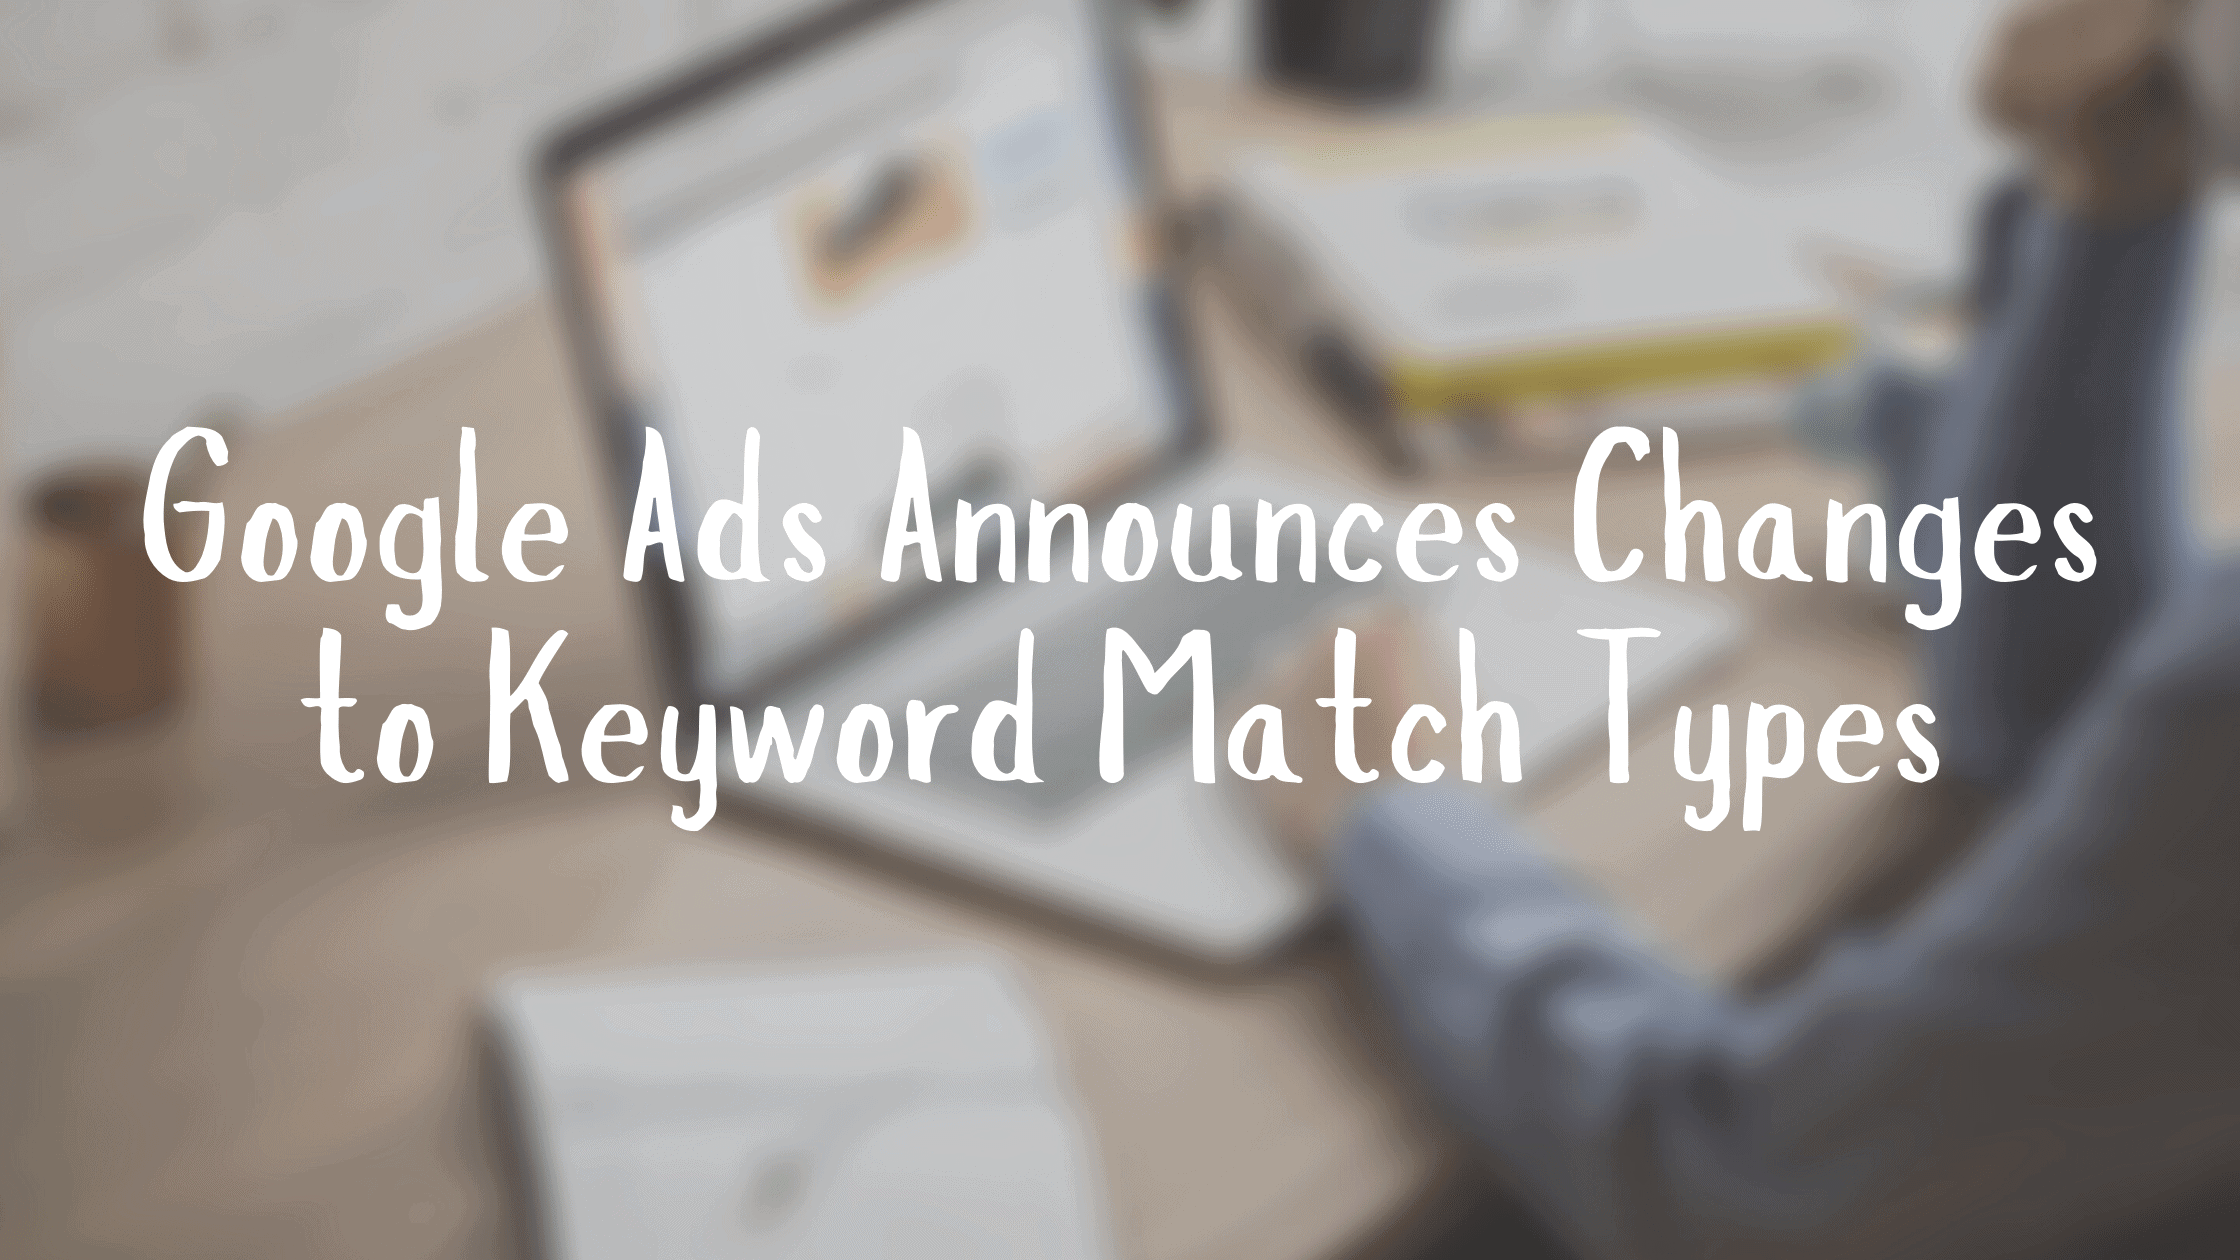 Google Ads Announces Changes to Keyword Match Types